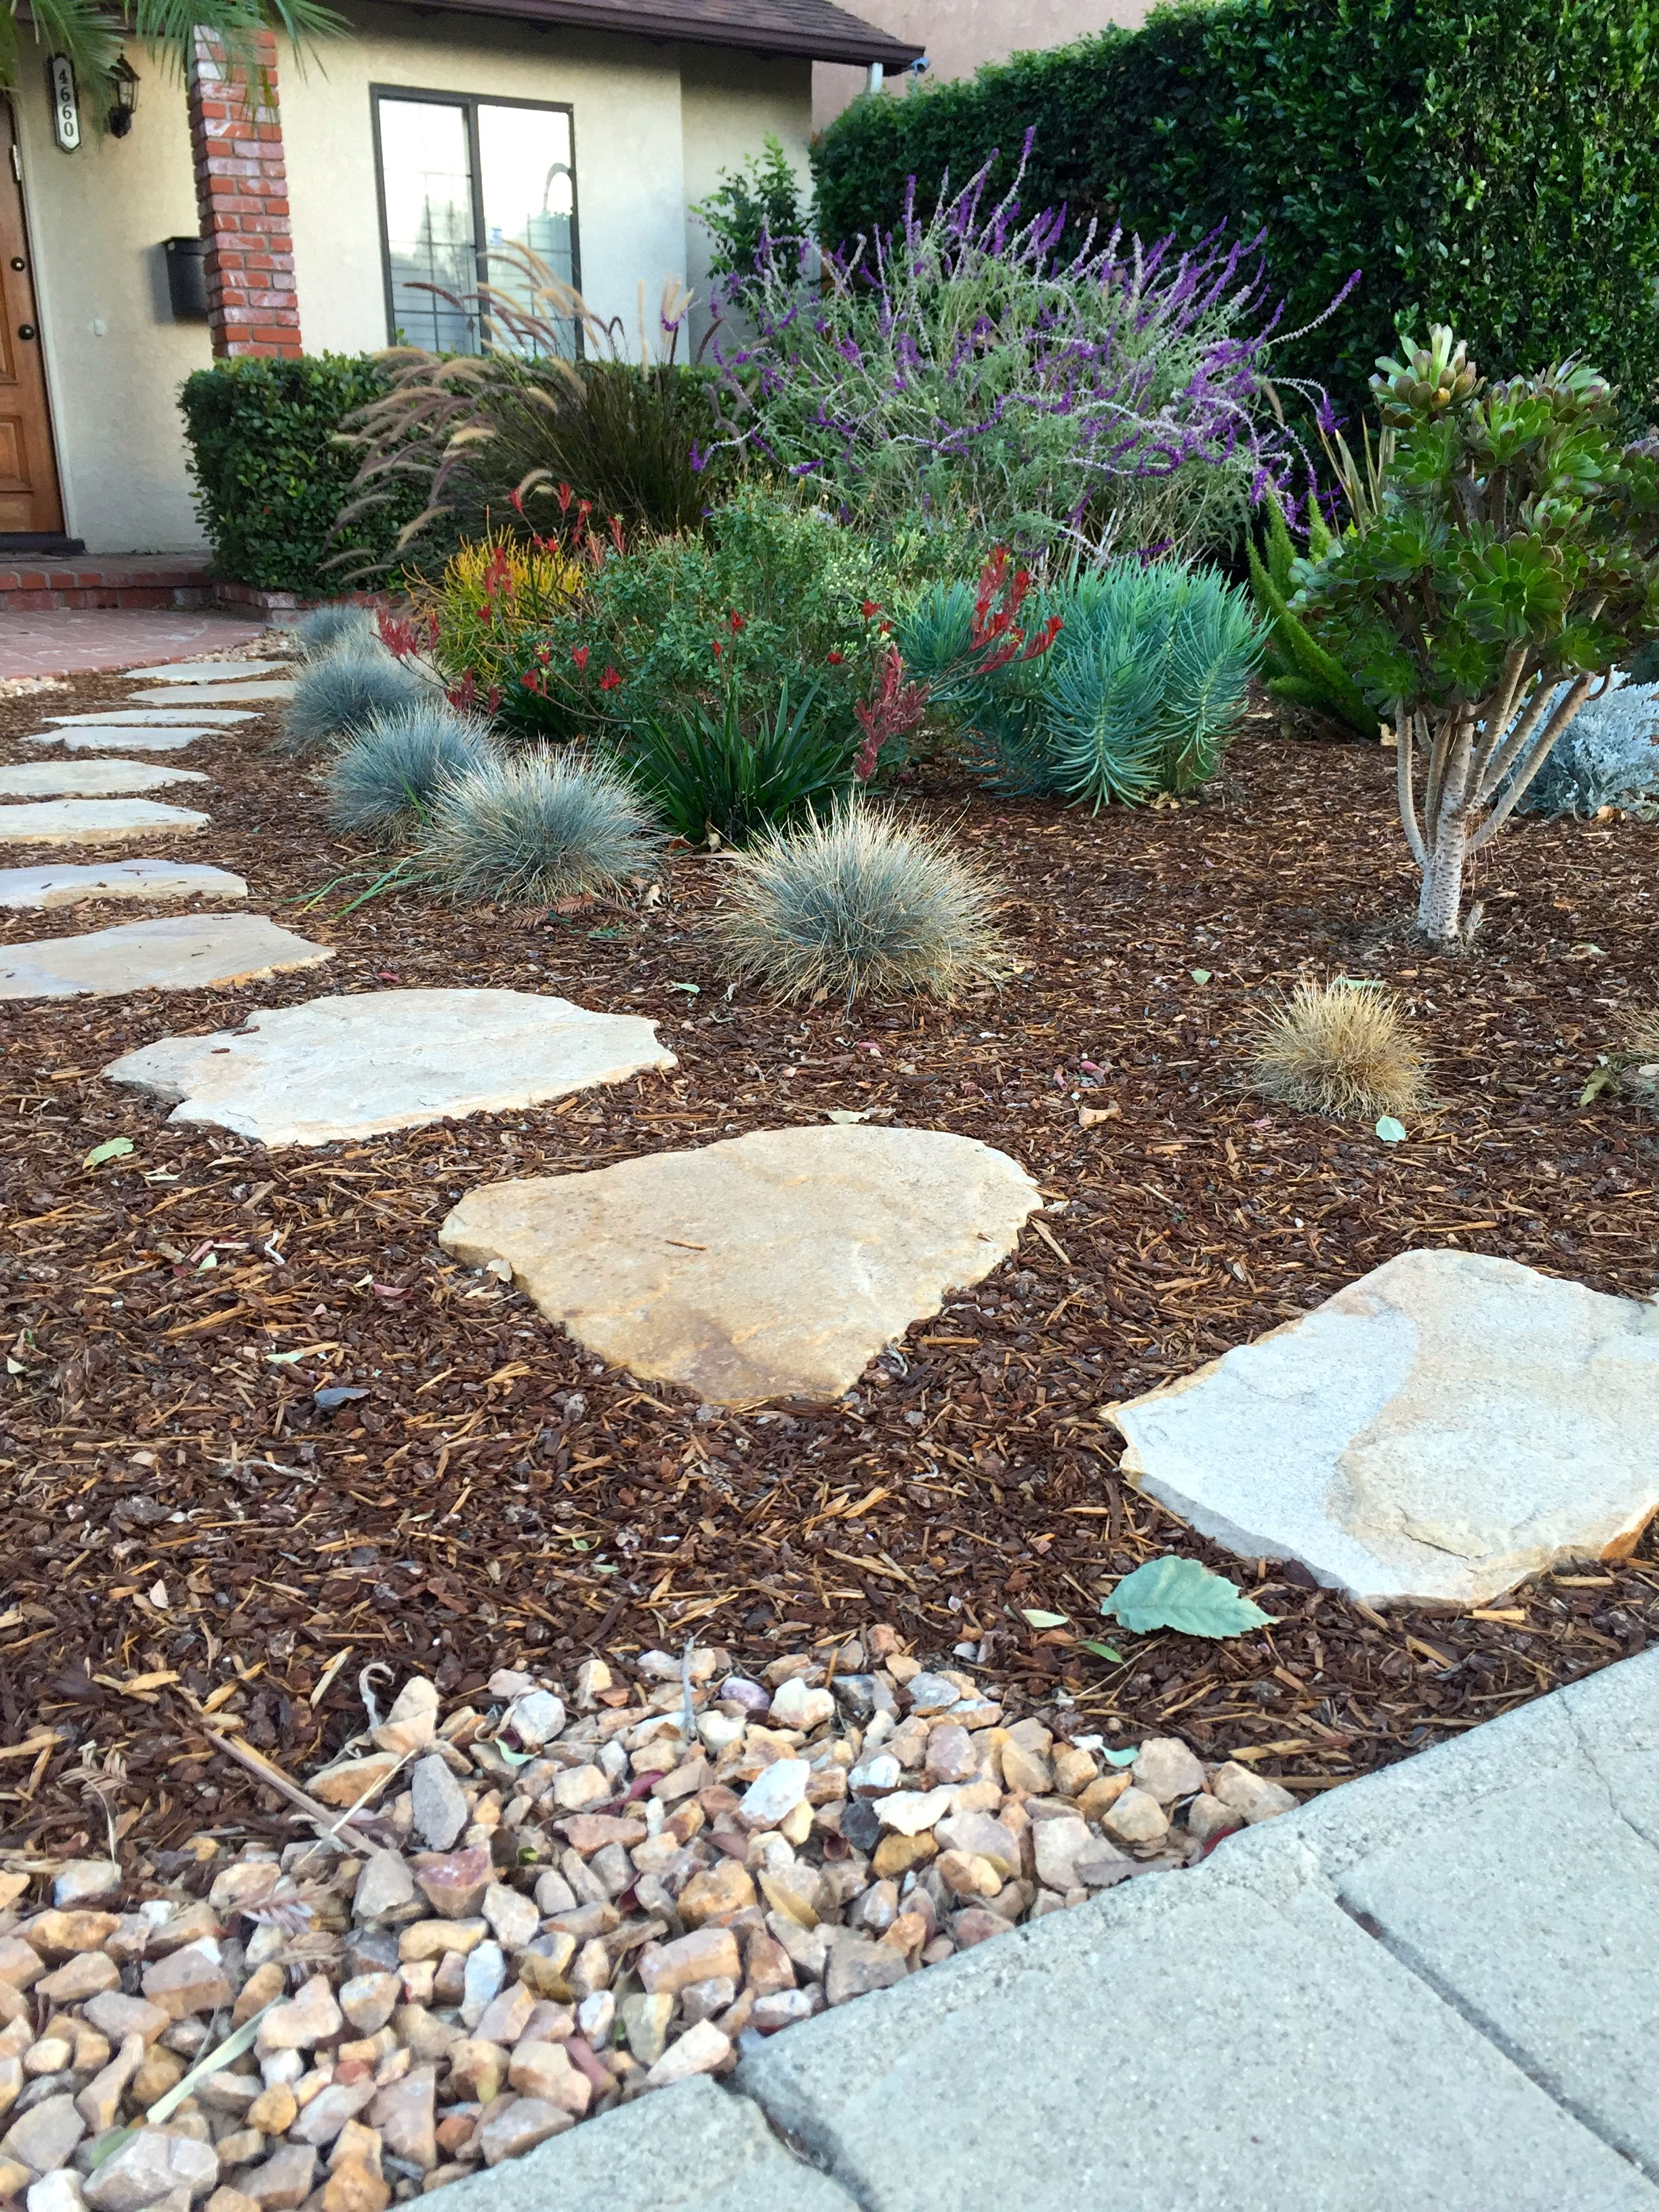 Paving stone pathway surrounded by mulch bark and for Landscaping ideas stone path